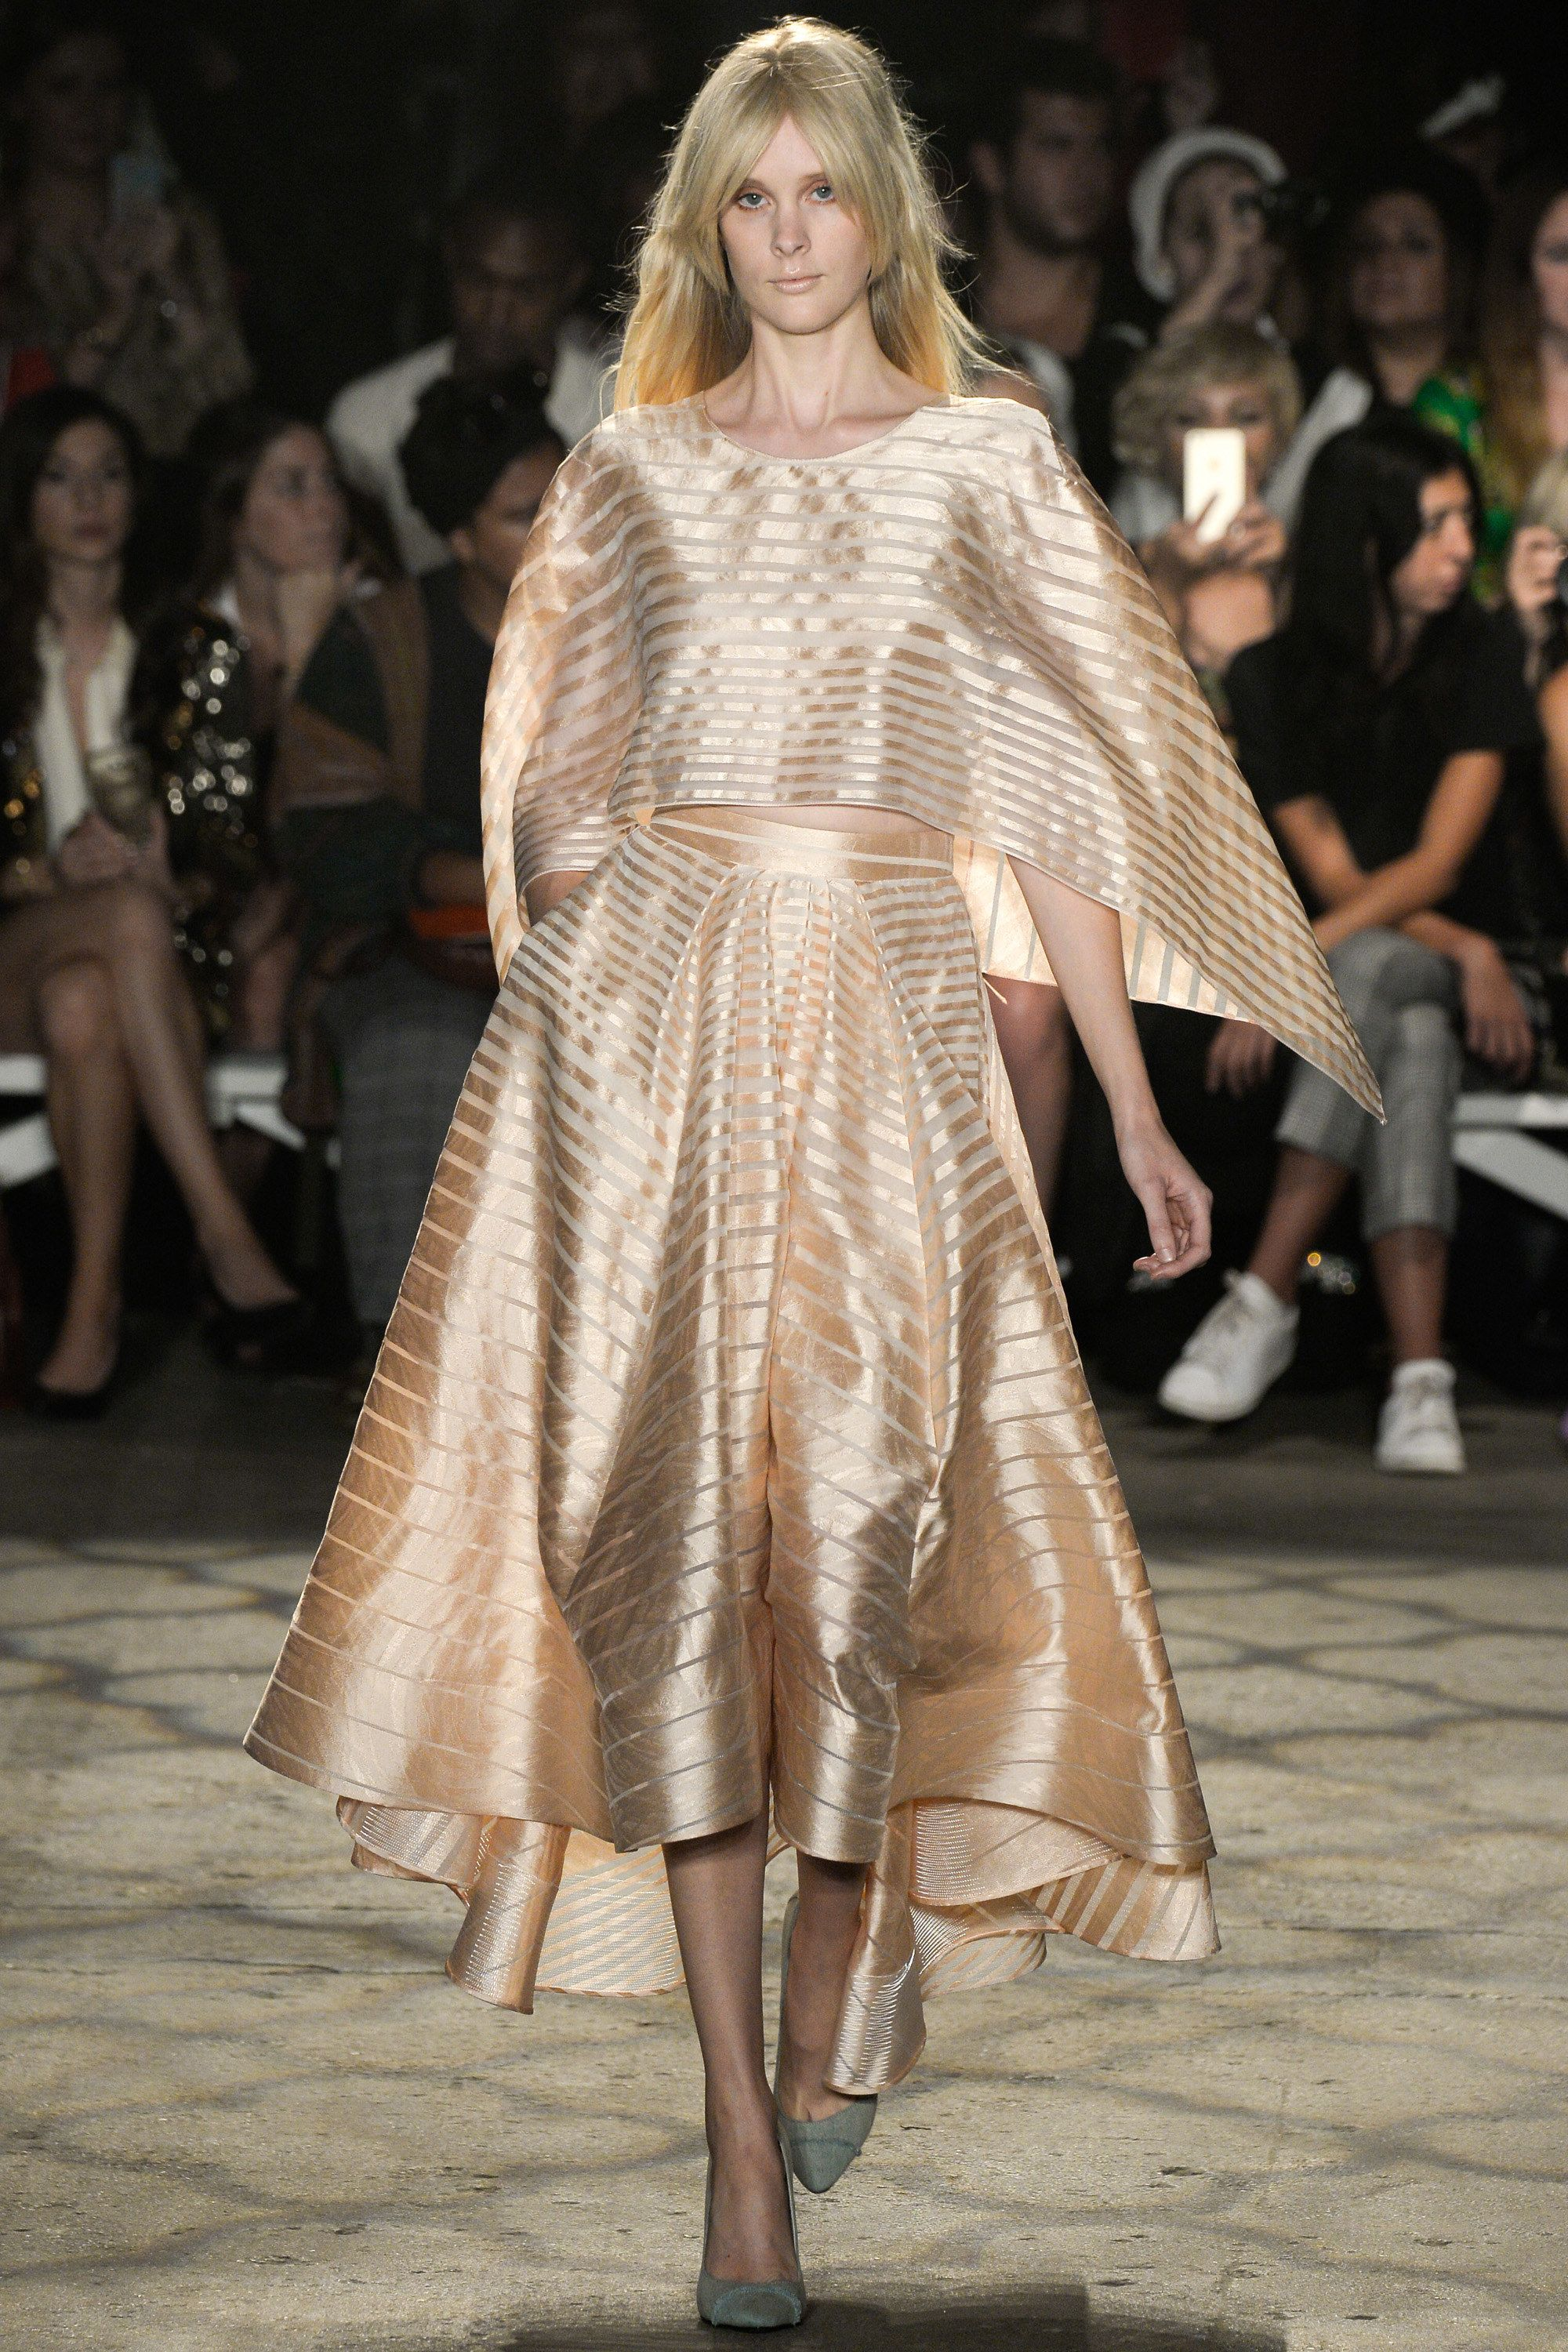 Christian Siriano Primavera 2016-Ready-to-wear Collection Fotos - Vogue